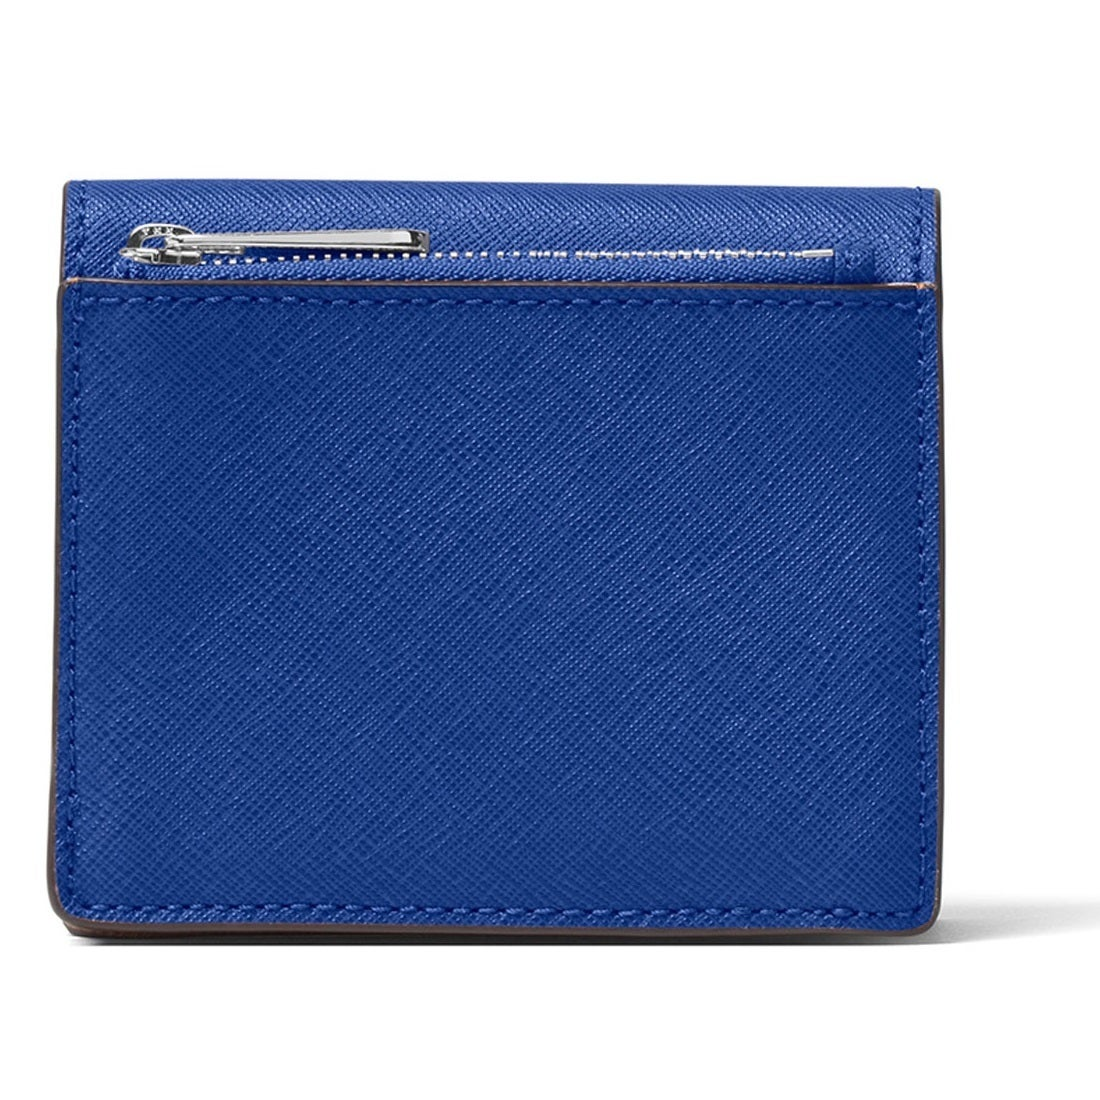 3e7cafb4a9a0 Shop Michael Kors Jet Set Travel Electric Blue Carryall Card Case Wallet -  Free Shipping Today - Overstock - 12876295